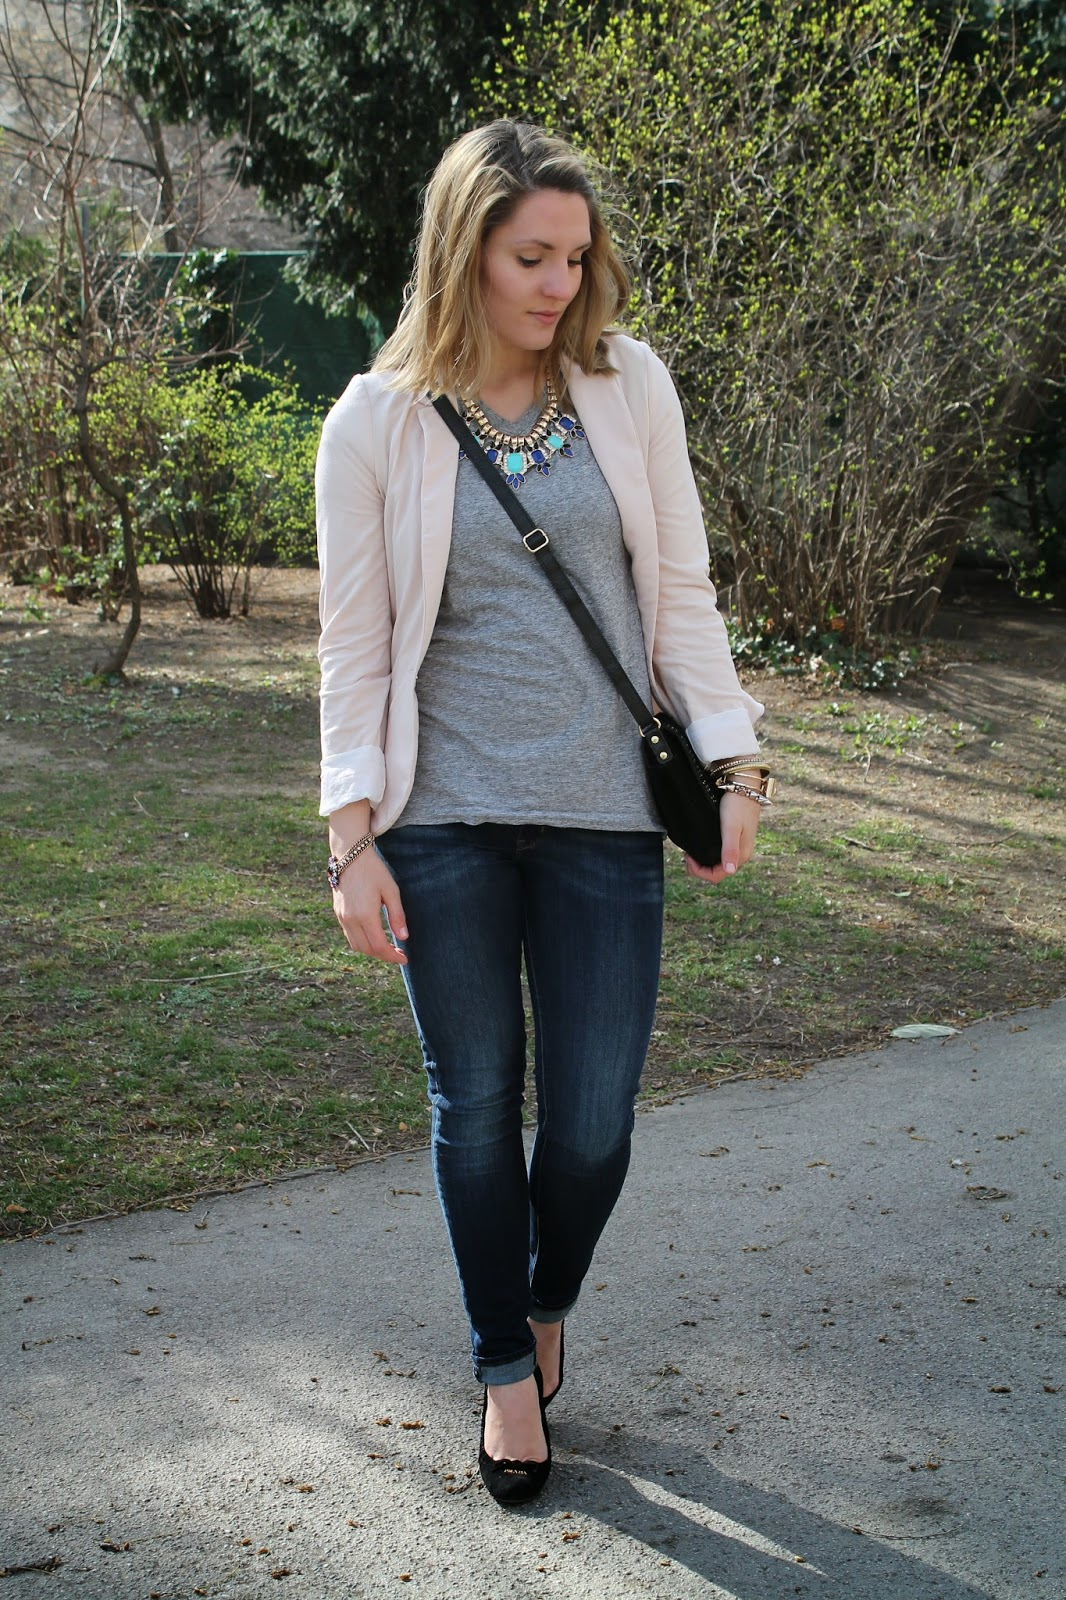 Fashionblogger Austria Österreich Spring Frühling Wien Vienna Klagenfurt Kärnten Carinthia Zalando Flap Bag Black Grey Shirt H&M Forever Statement Necklace Levis Jeans Persunmall Bracelet Prada Pumps Style Look Lookbook Outfit